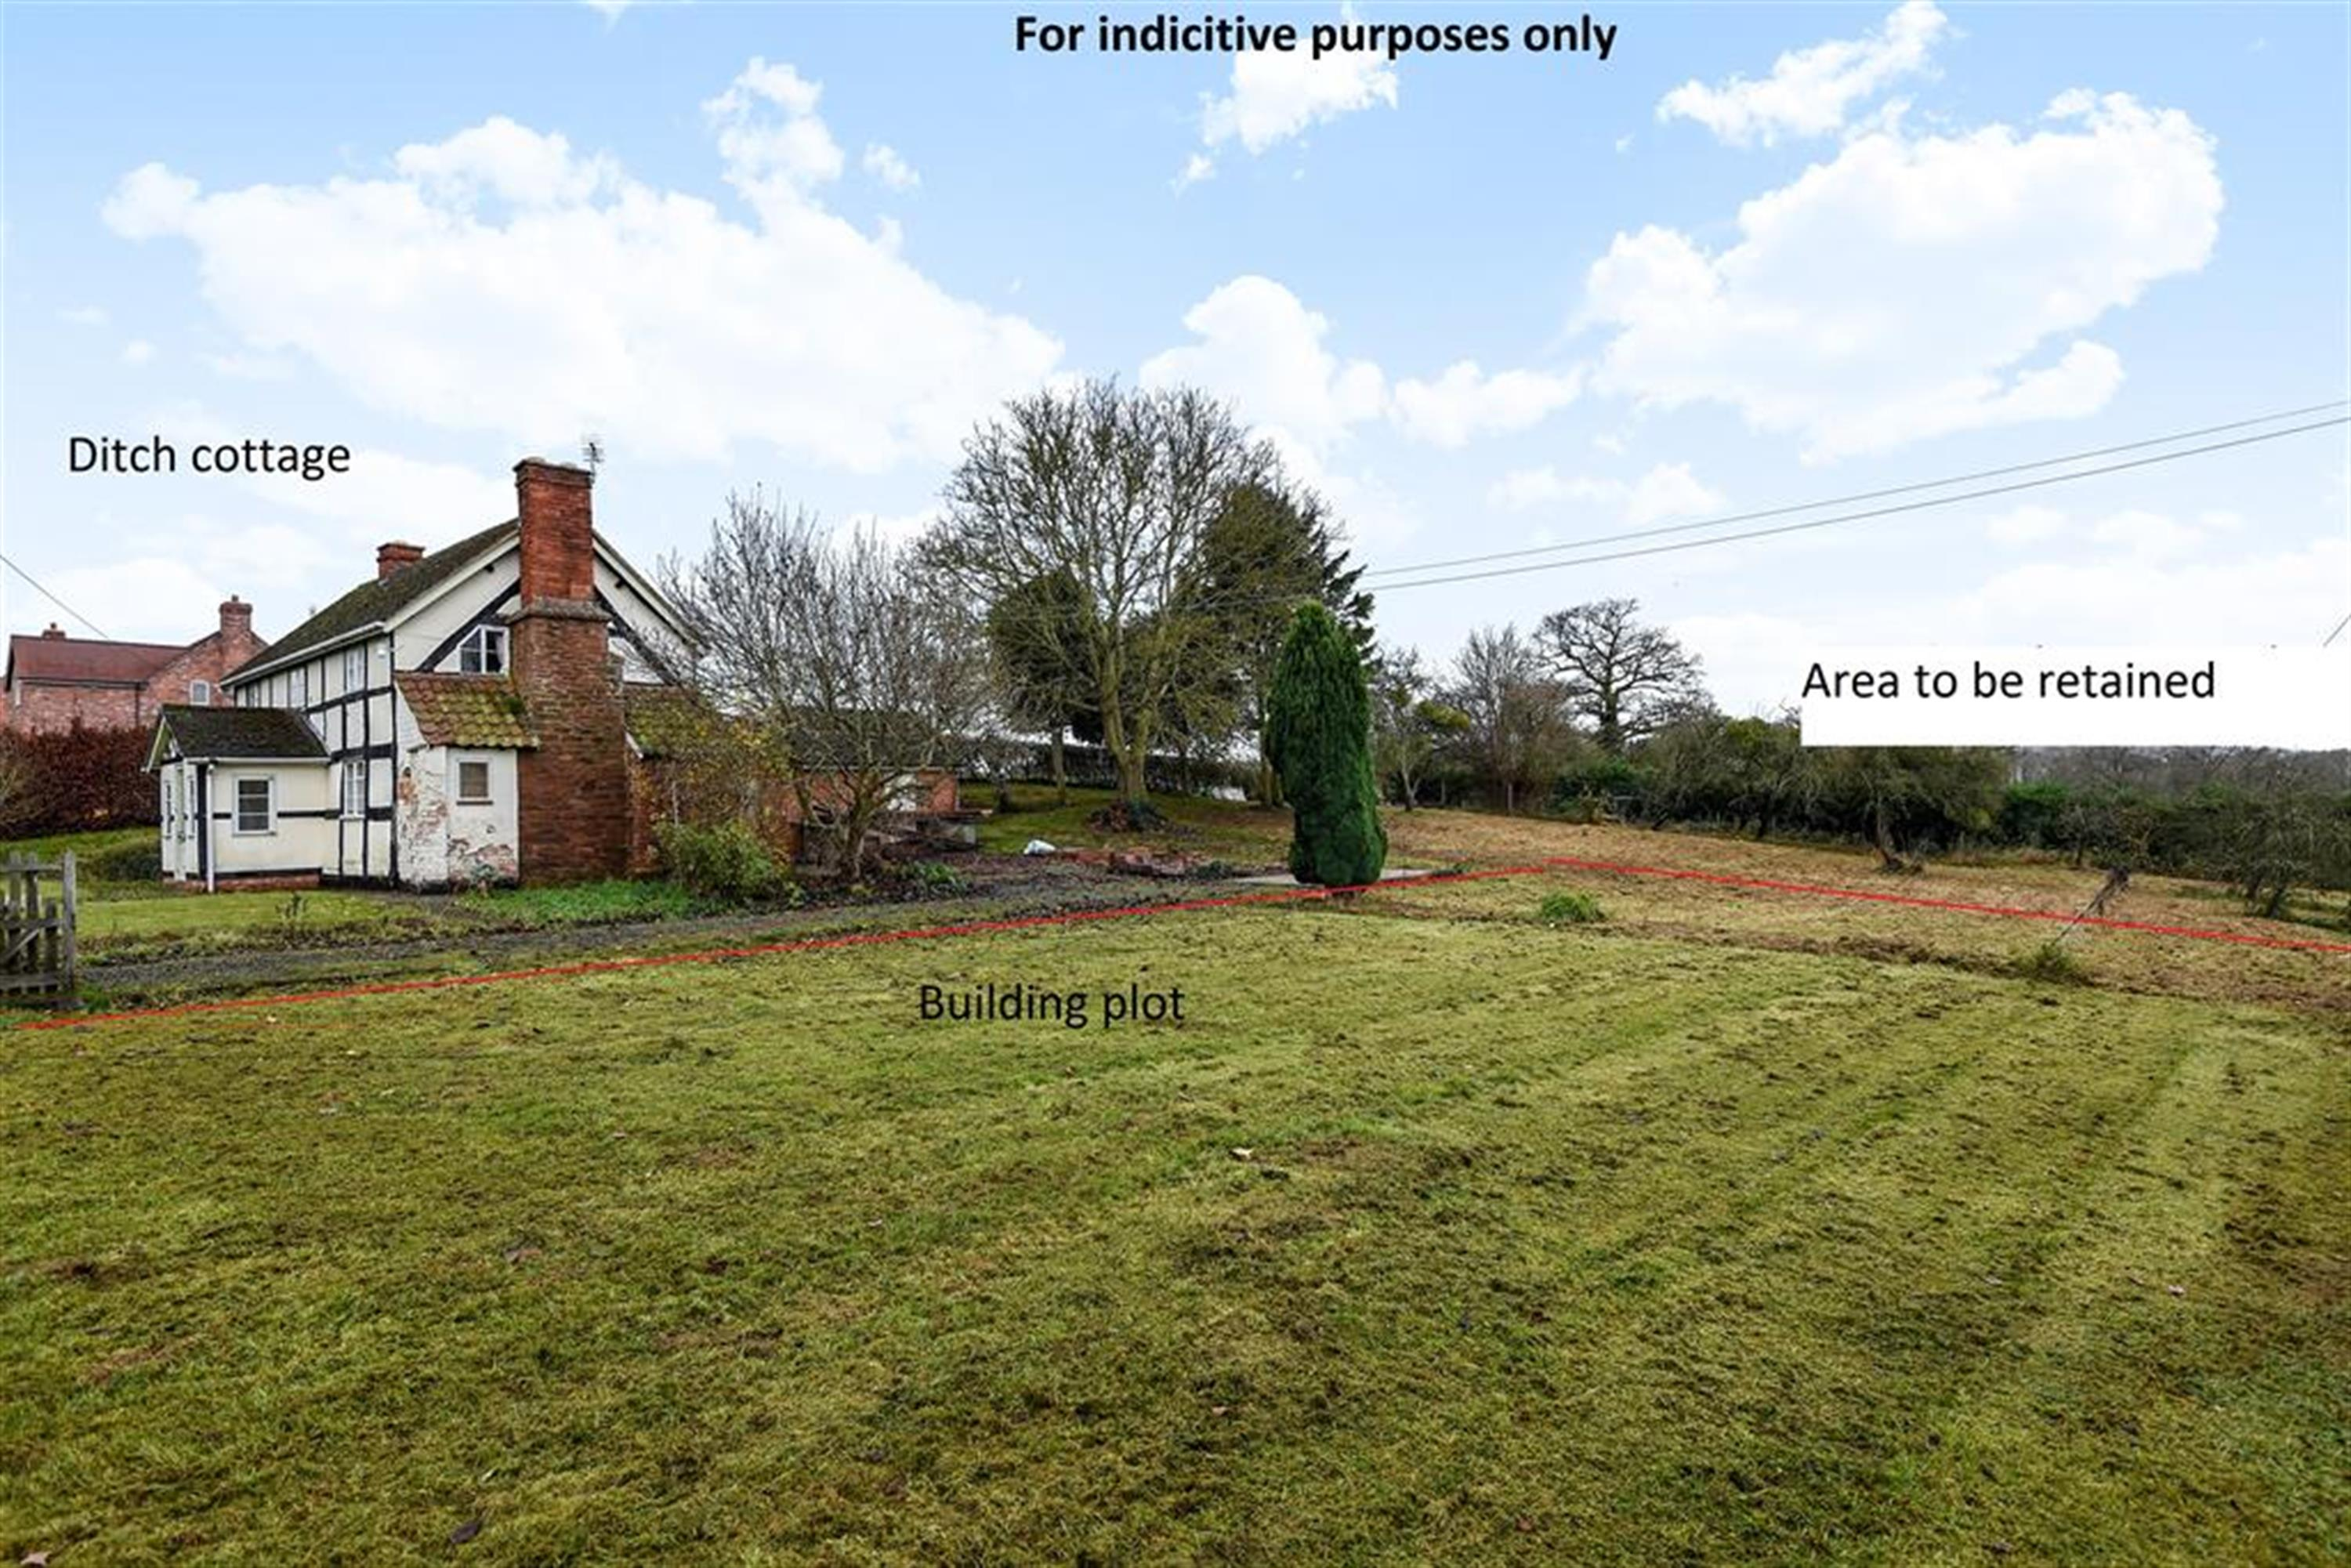 The Building plot, The Ditch , 44 Ashperton Road, Ashperton Nr Ledbury, Herefordshire , HR8 2RY